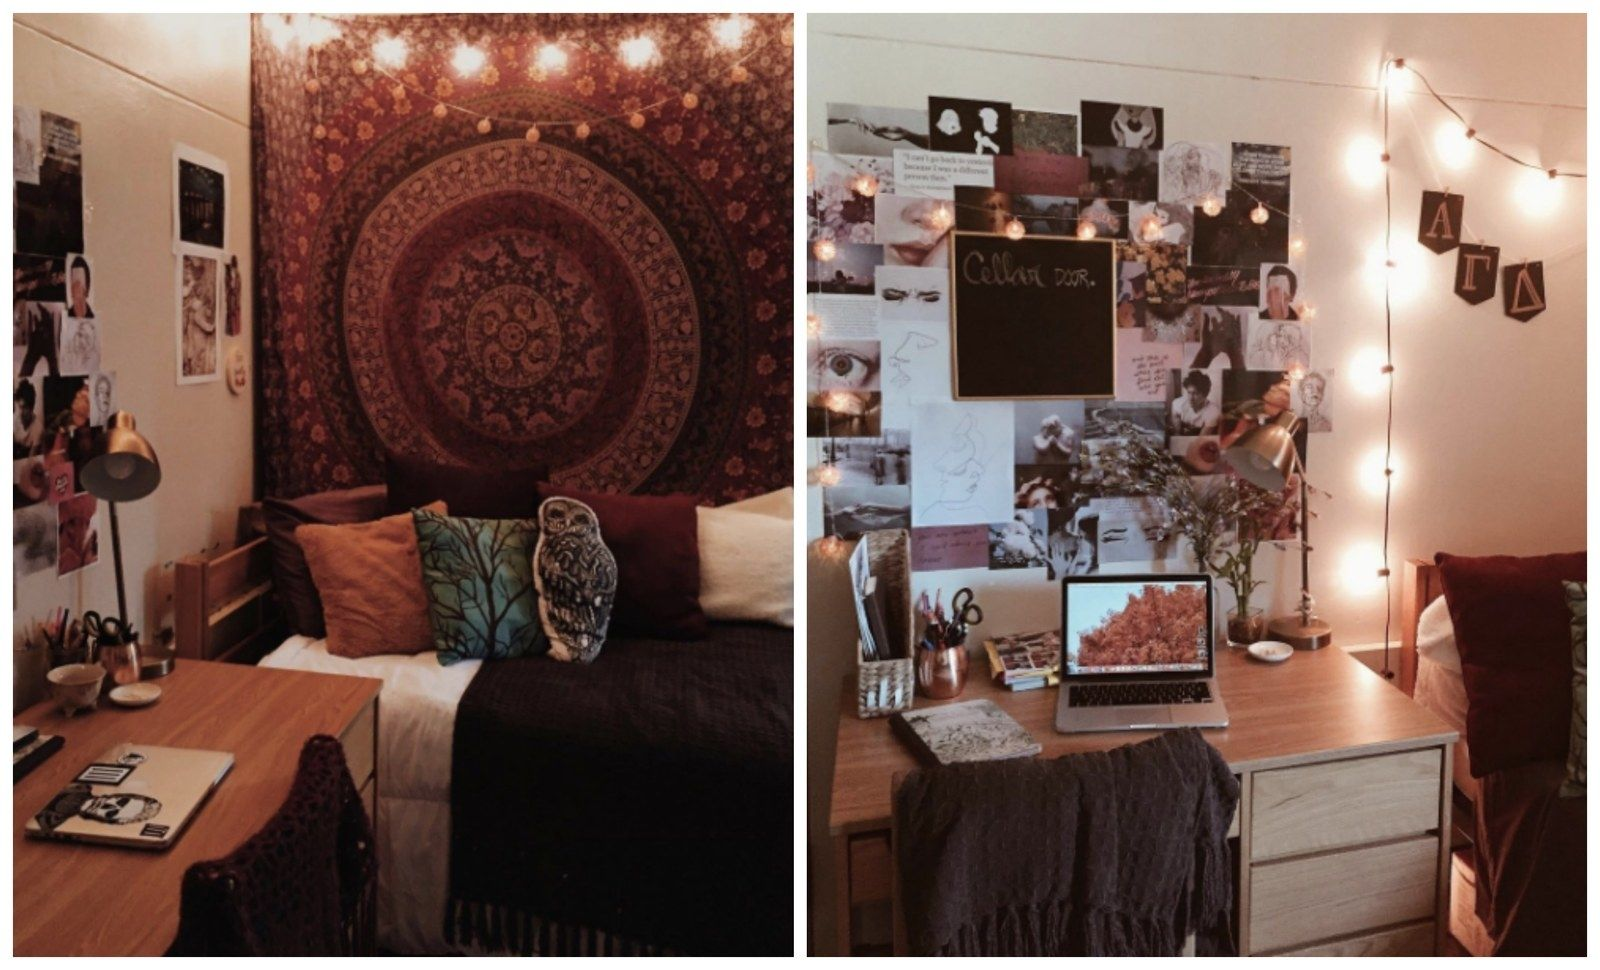 15 dorm rooms that ll make your own bedroom look like total garbage rh pinterest com